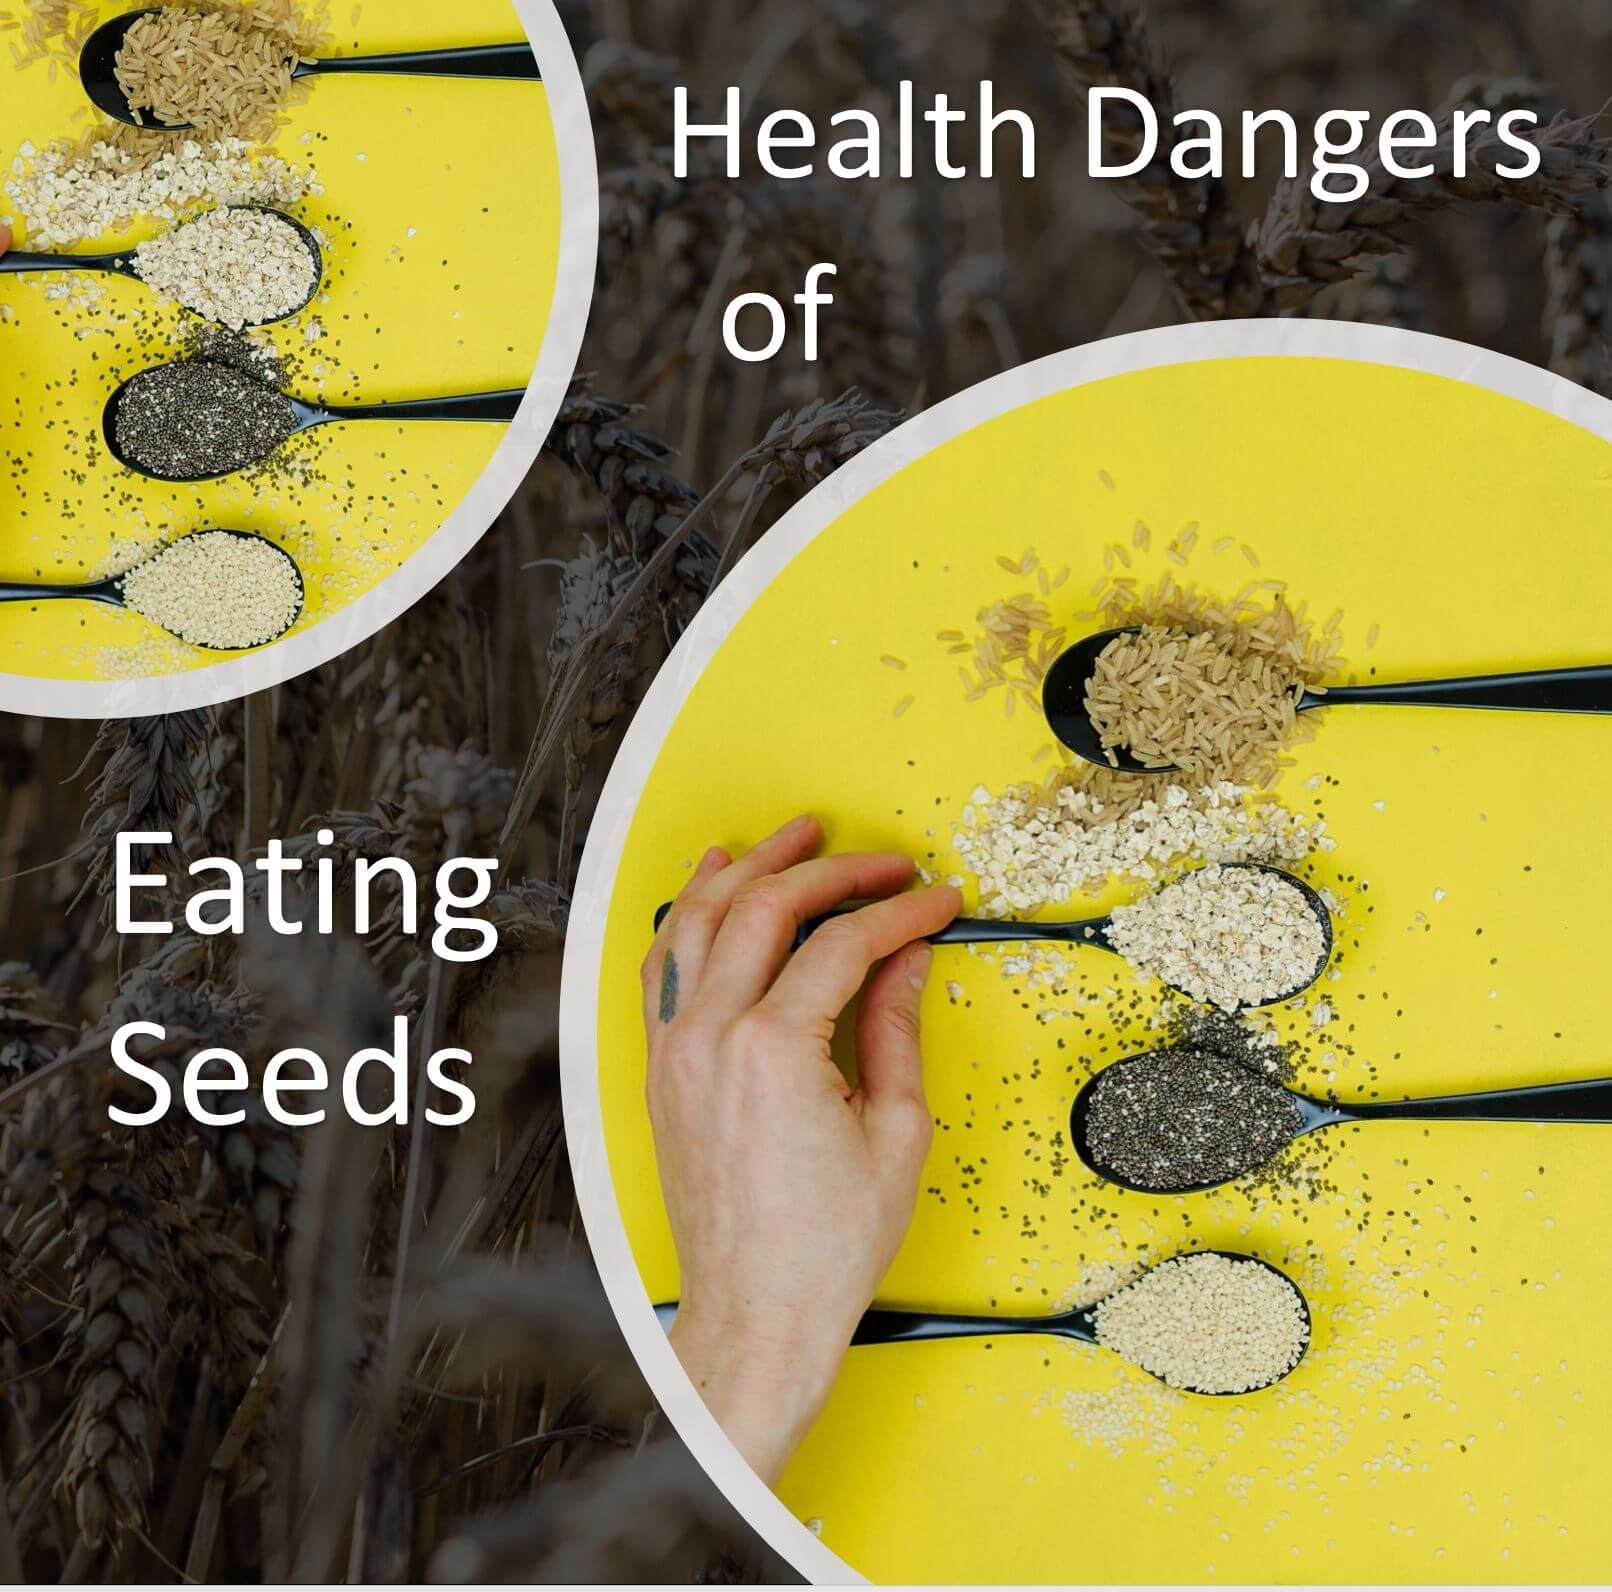 Health Dangers of Eating Seeds | Kevin Stock